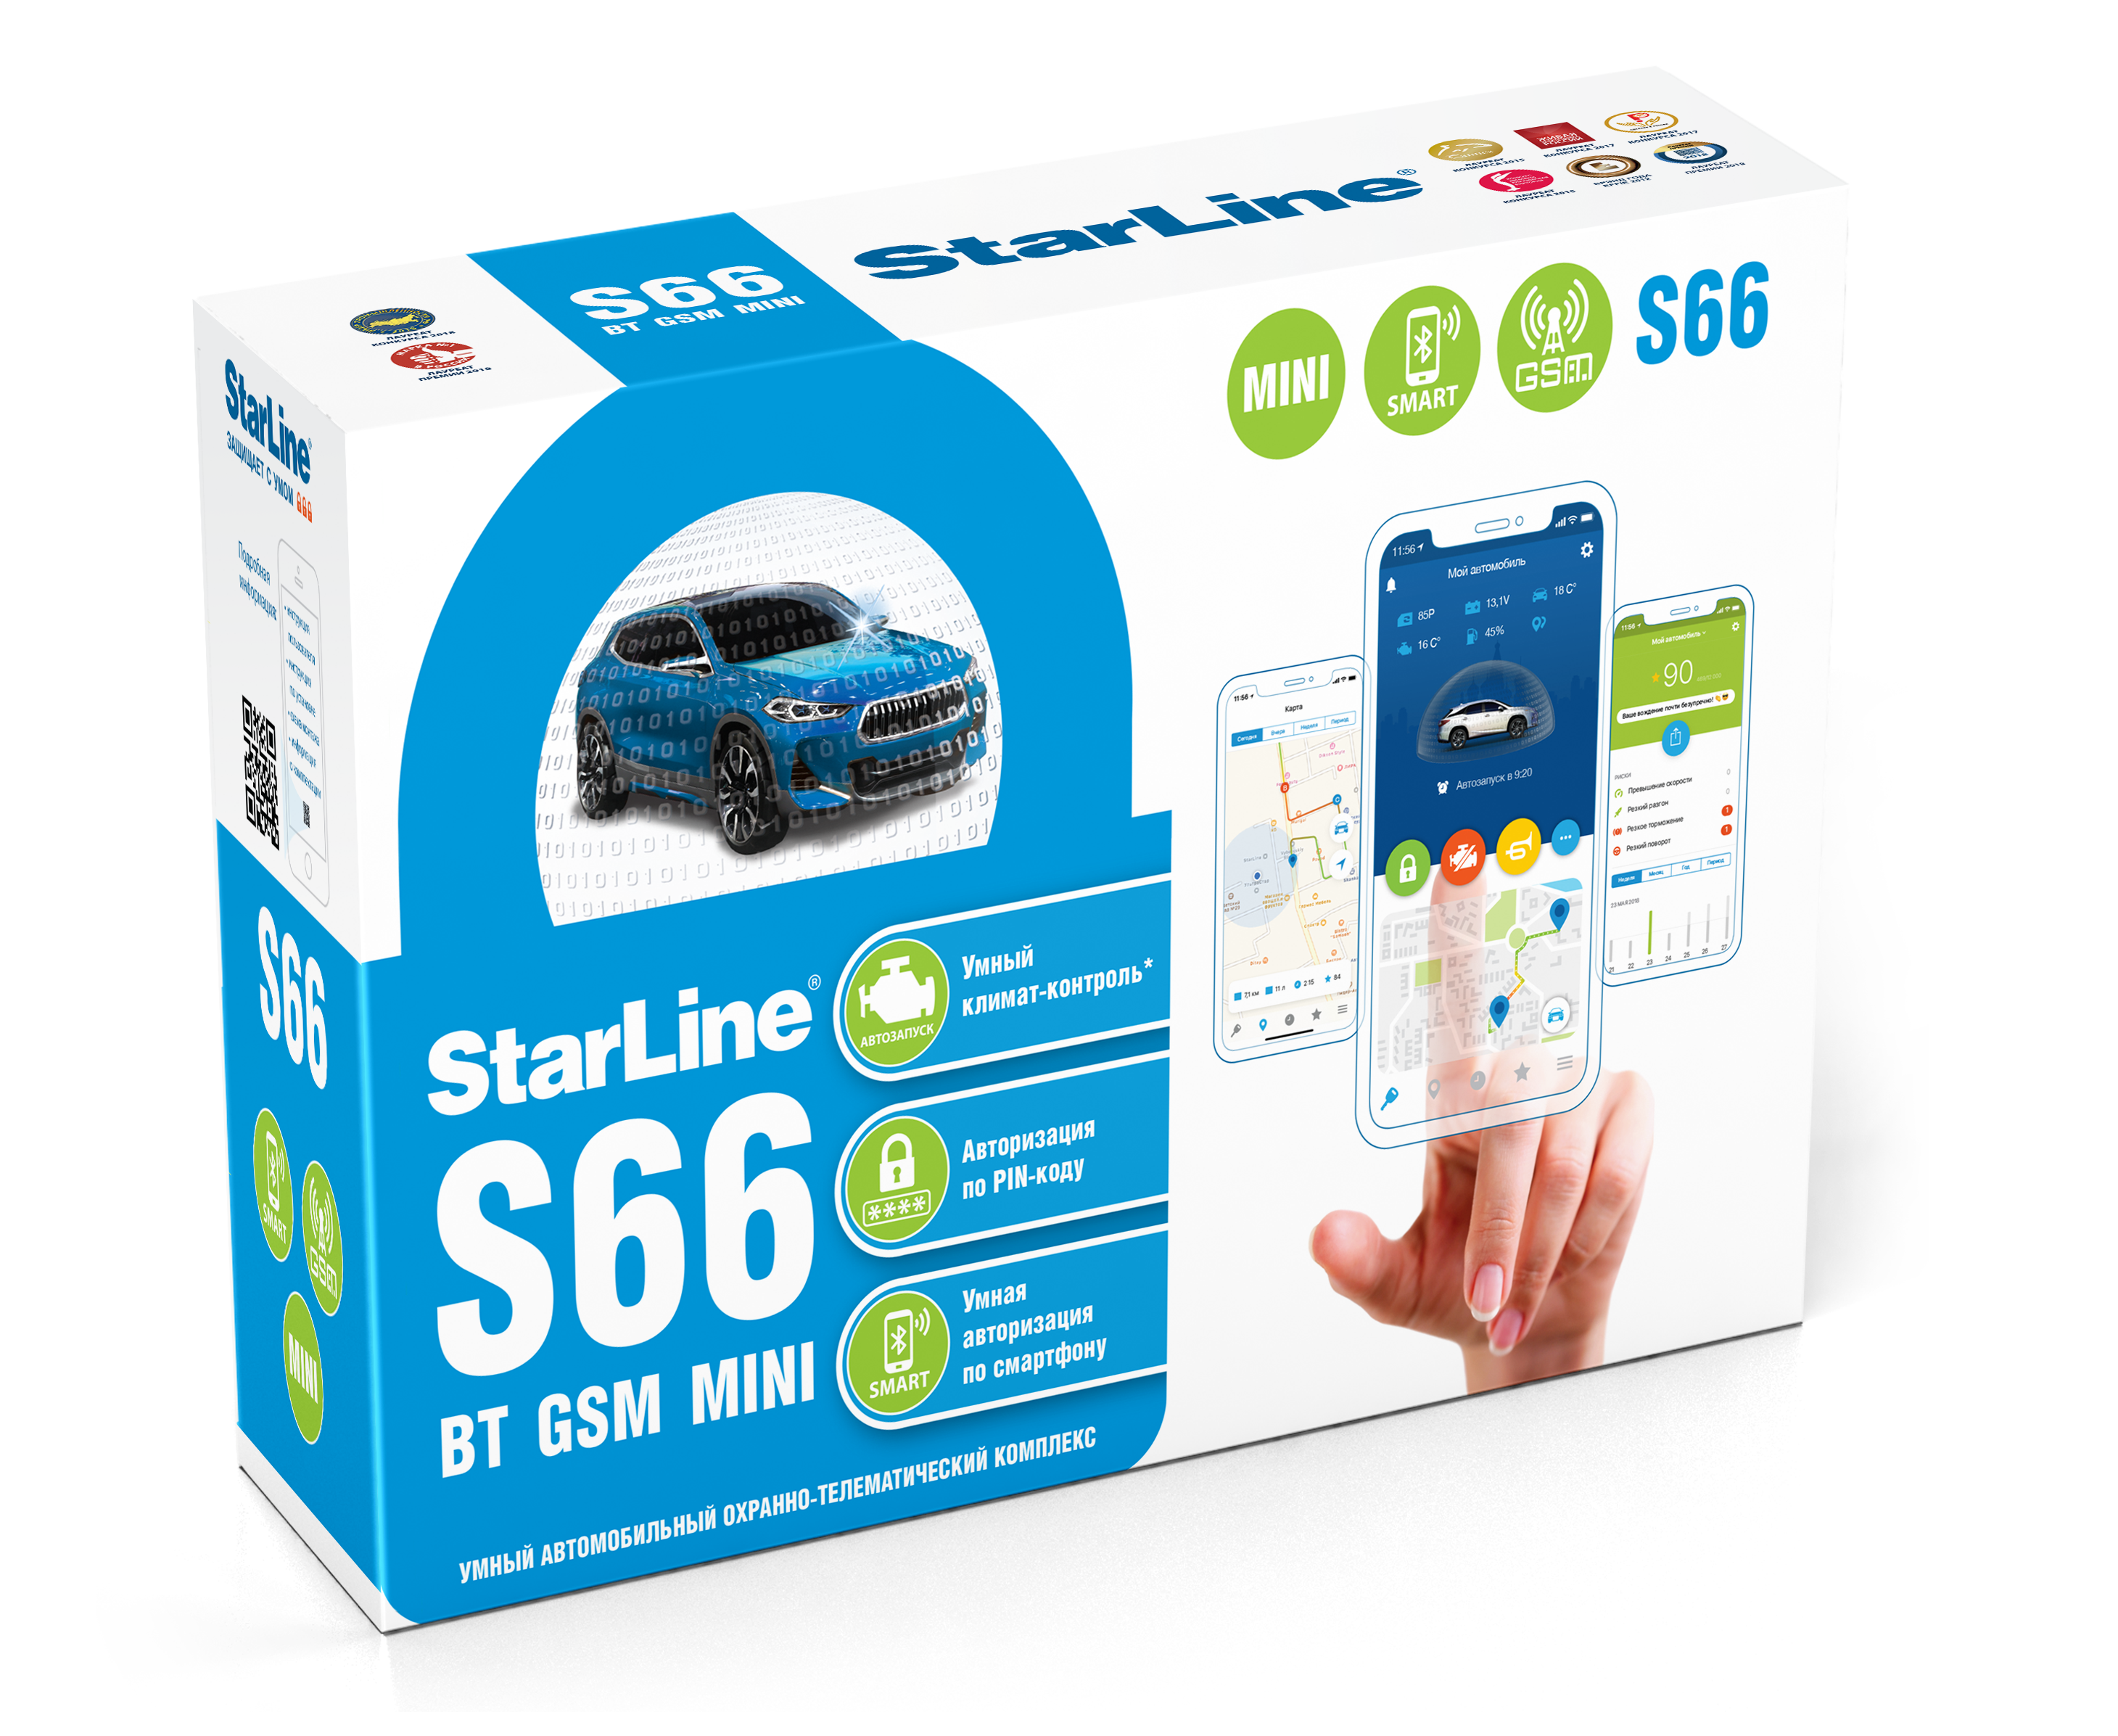 StarLine S66 BT GSM MINI